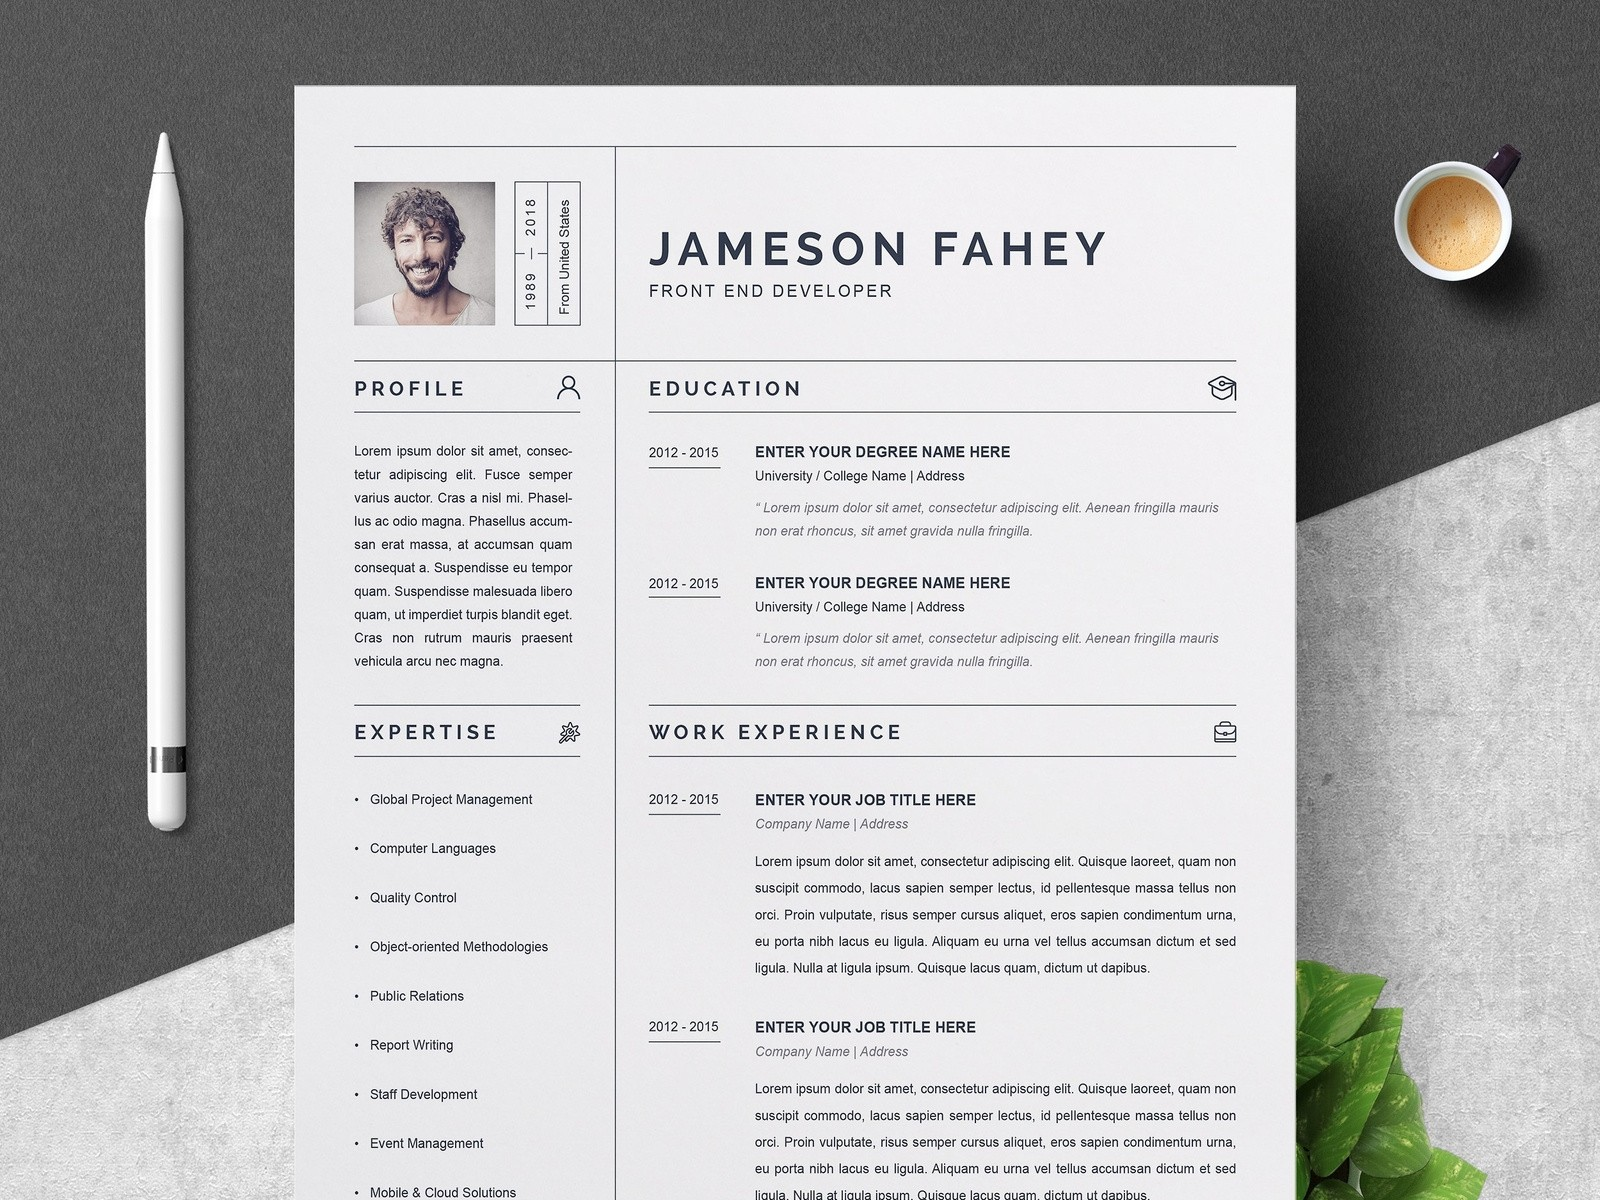 resume template examples  Clean Resume / CV Template by Resume Templates | Dribbble ..